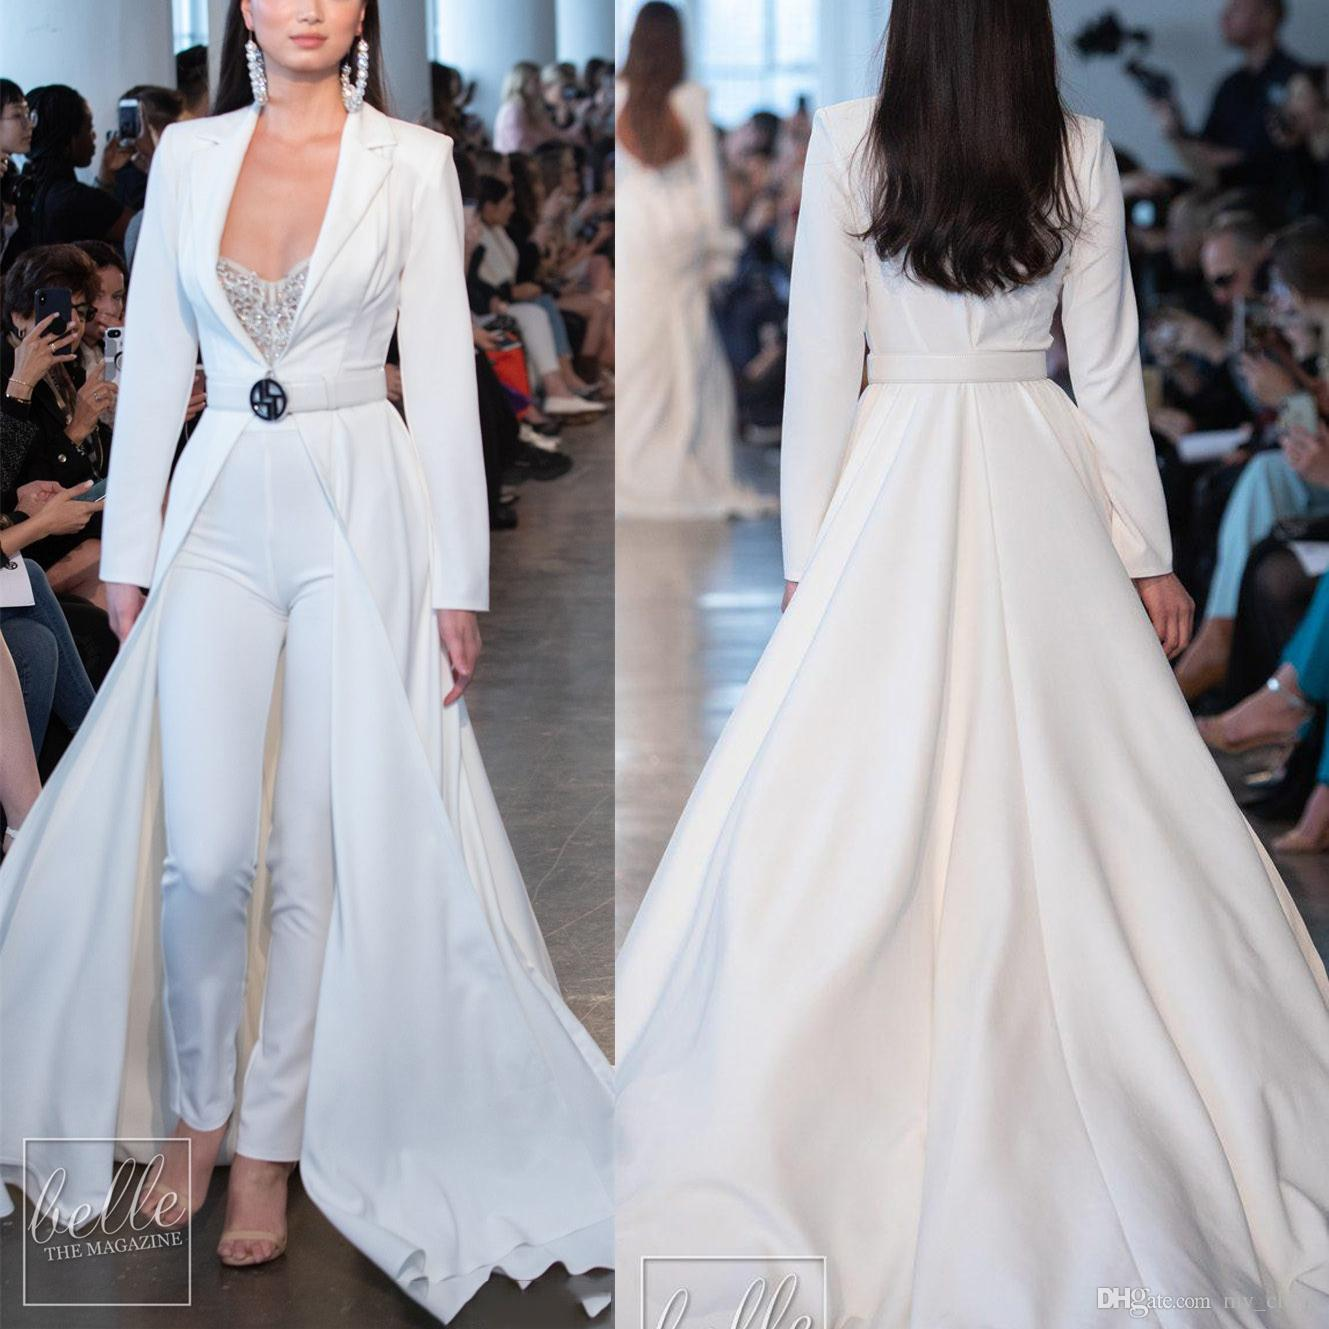 Fashion 2020 White Berta Prom Dresses Jumpsuits Long Sleeve Long Jackets Satin Evening Gowns Plus Size with Pants Suits Party Dress